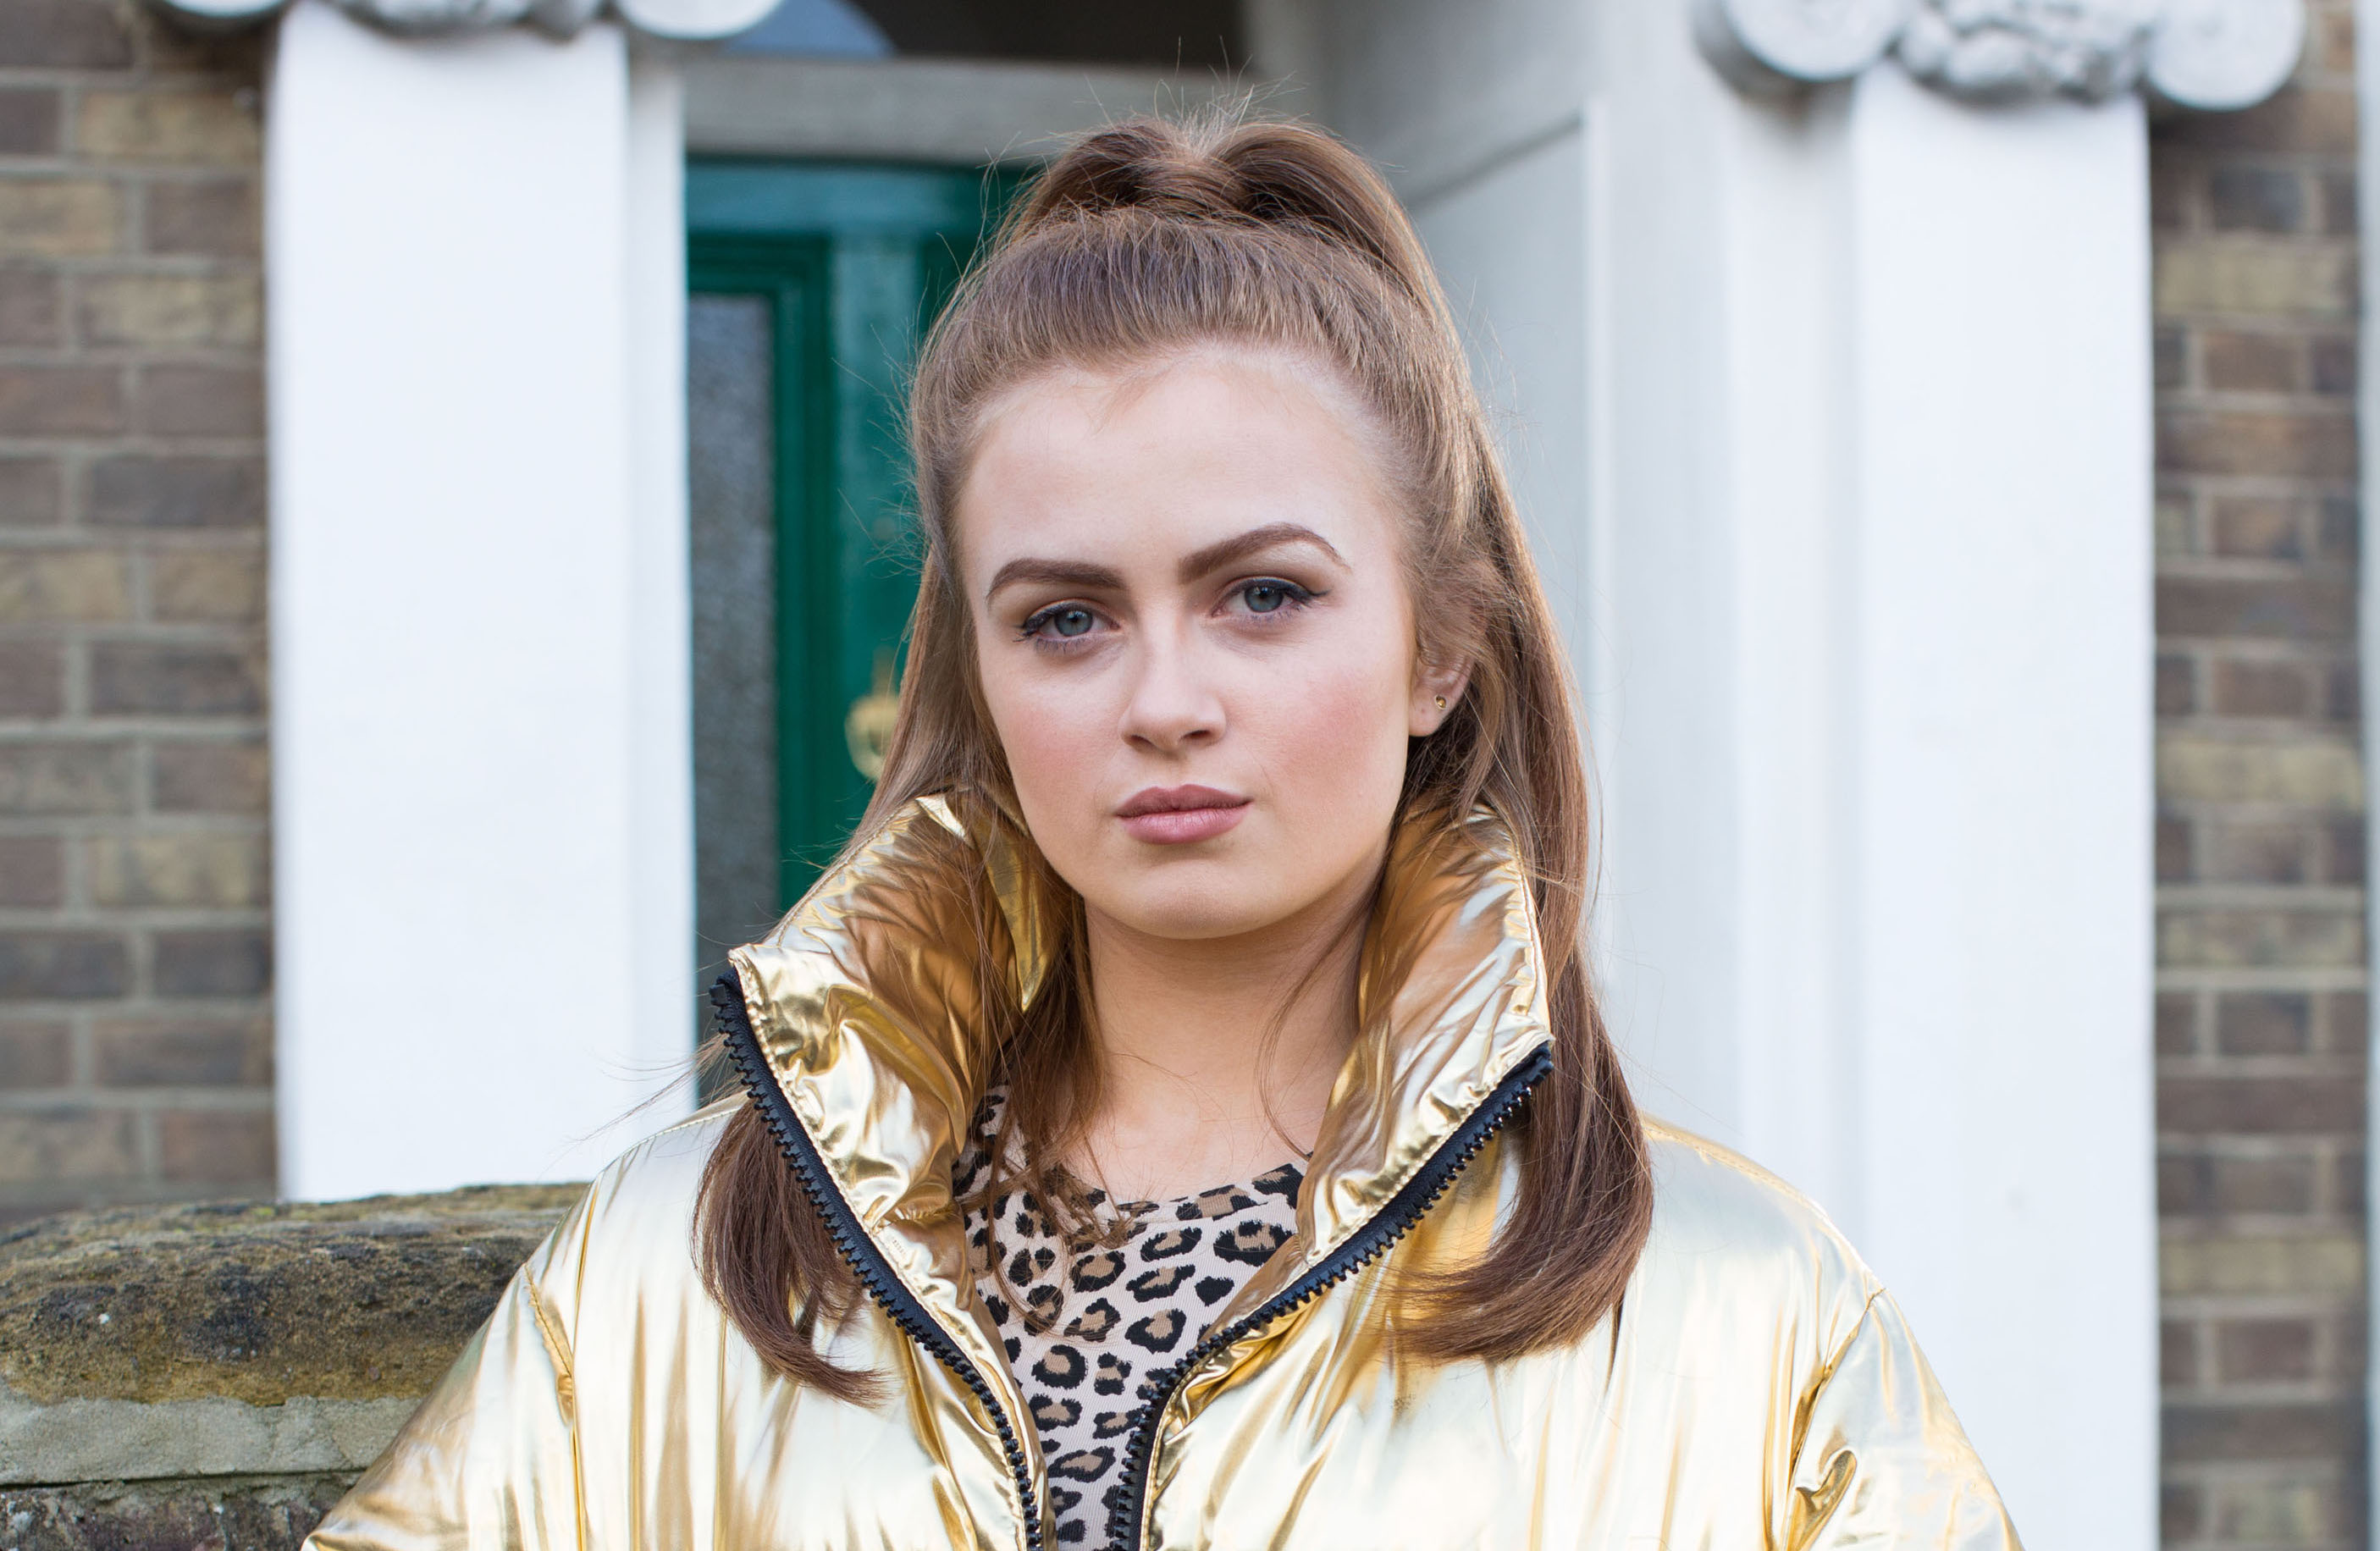 EastEnders - Tiffany Butcher